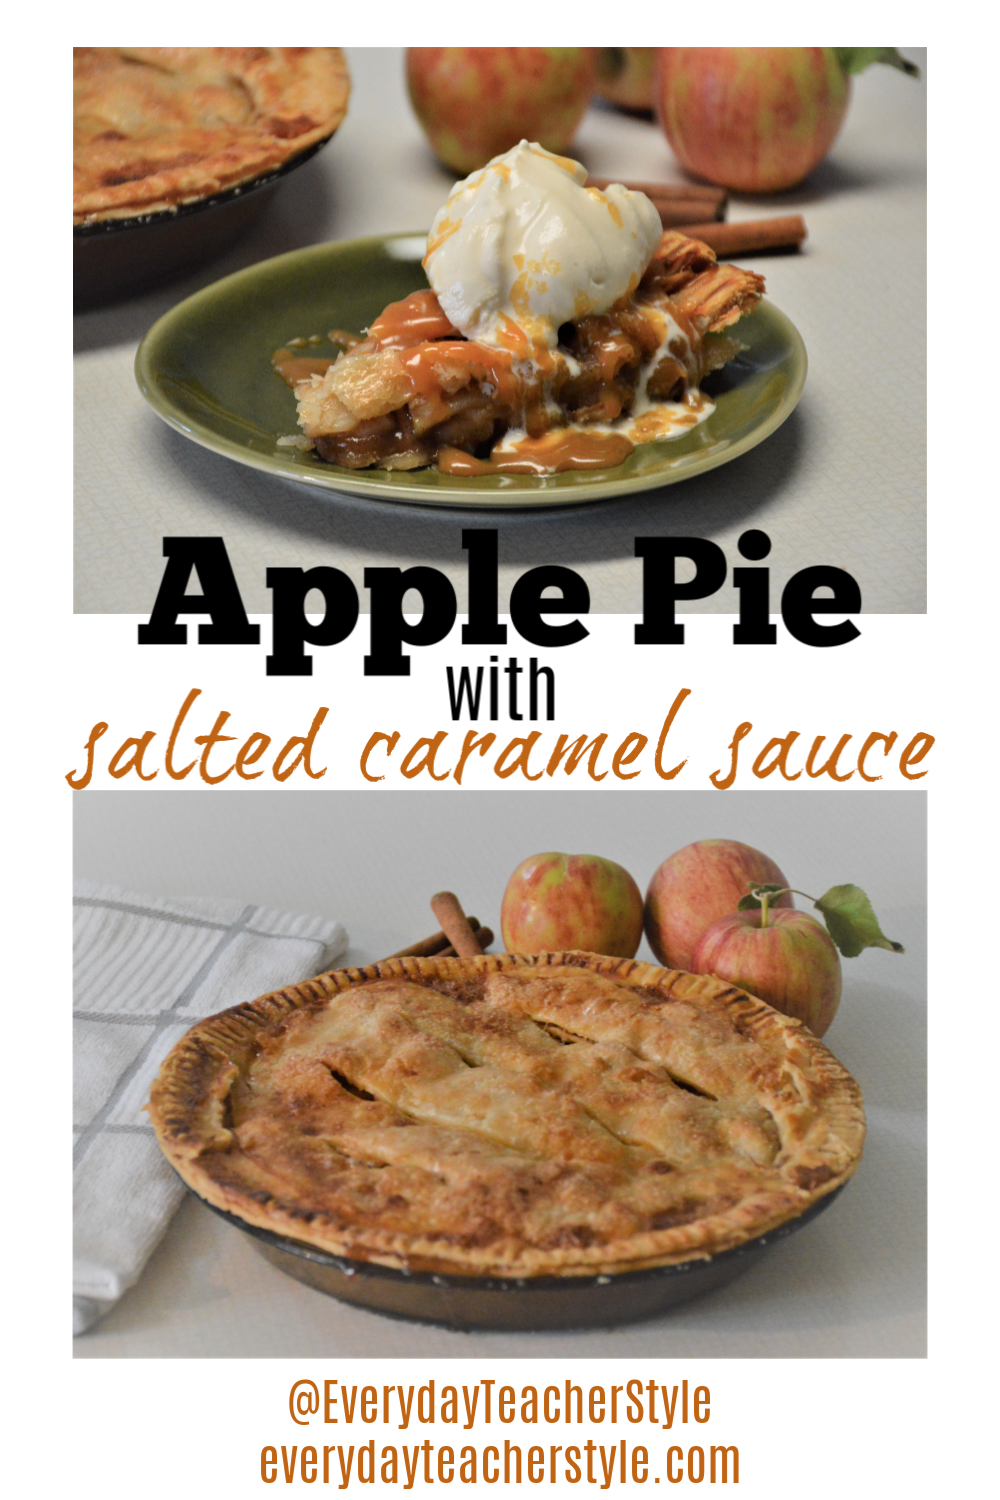 Best easy apple pie with salted caramel sauce recipe - serve with vanilla ice cream